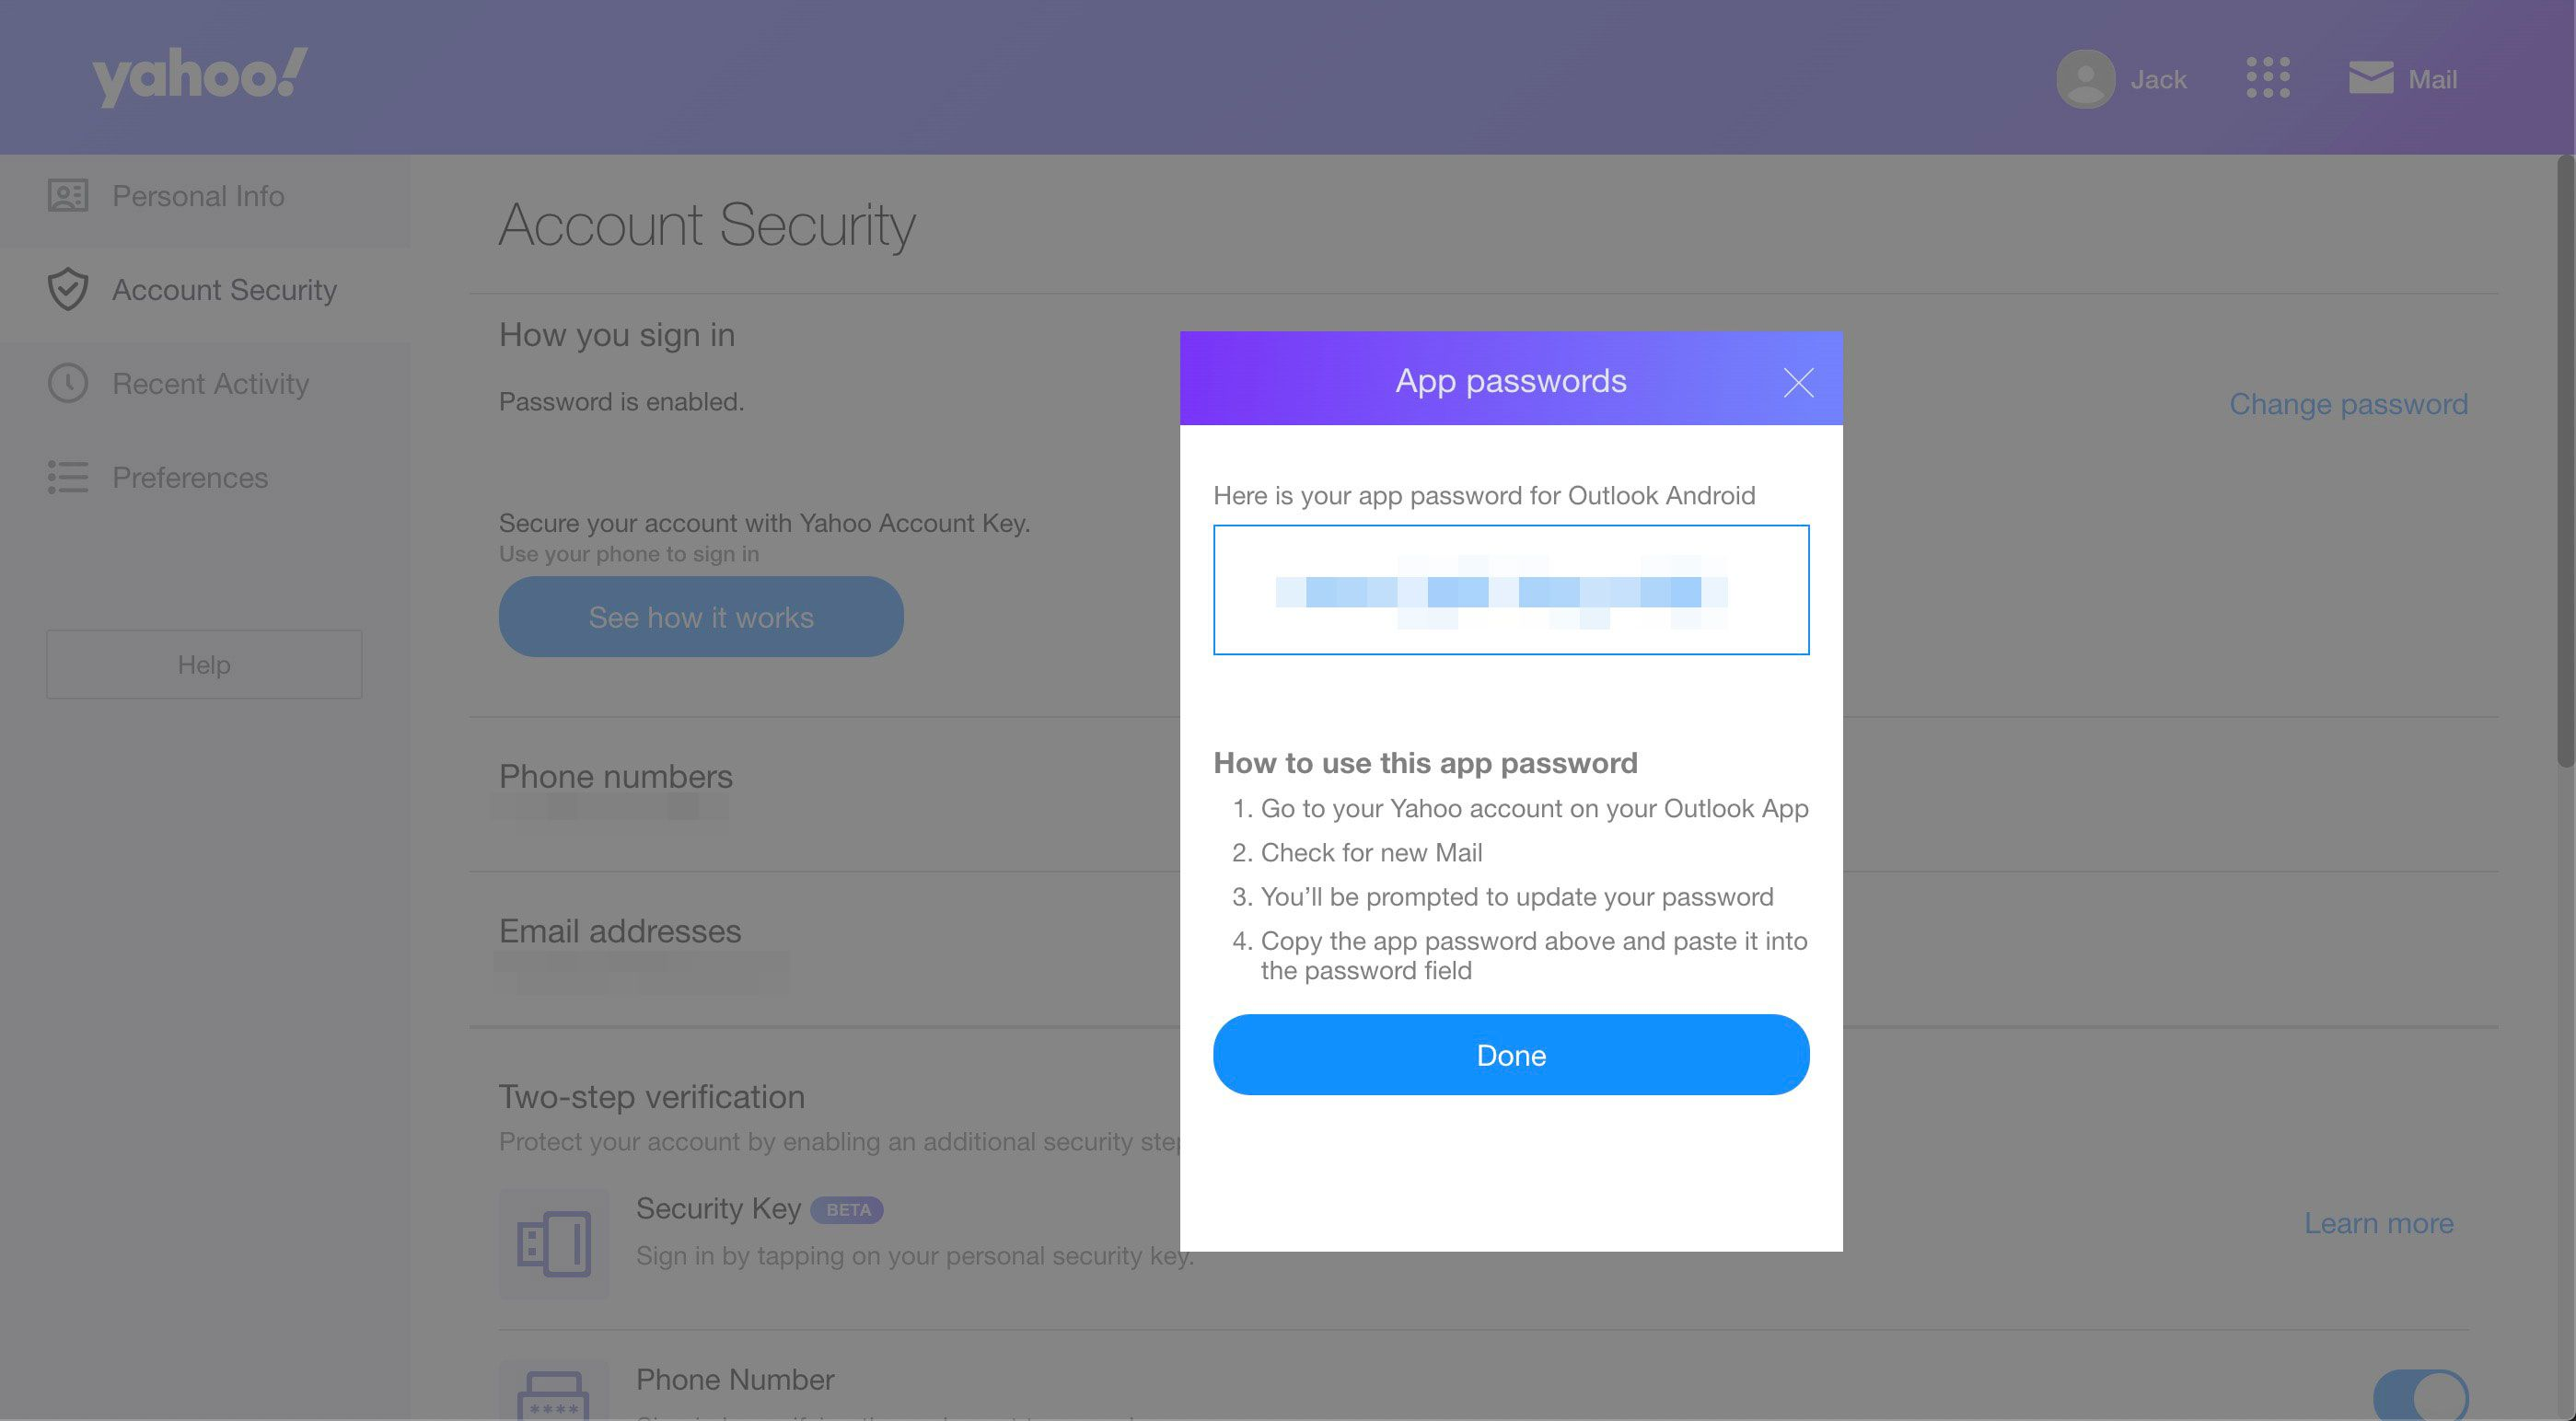 Instructions for an app password in Yahoo Mail